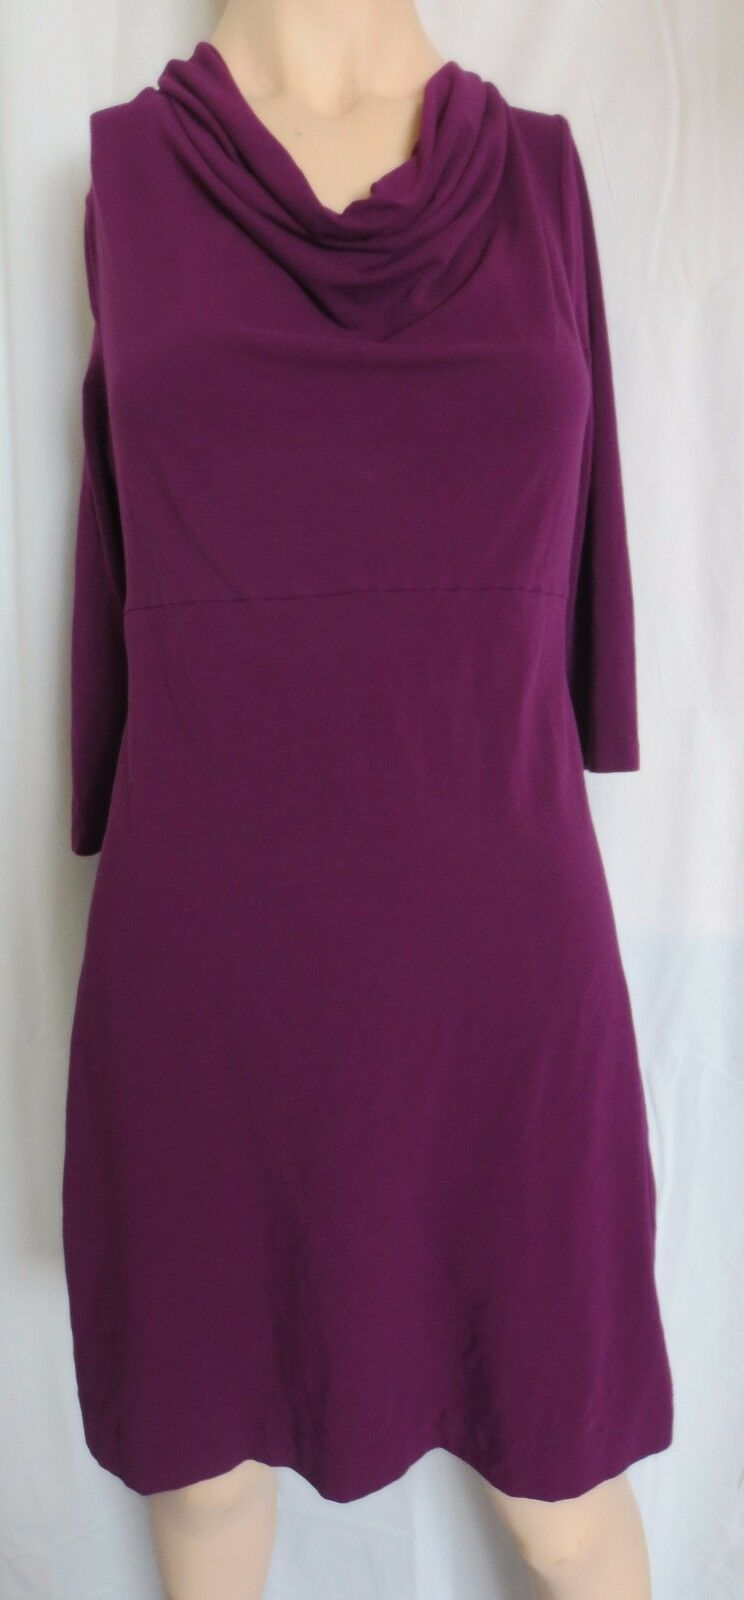 Primary image for J Crew Cowl neck stretch cotton jersey dress Purple Size M